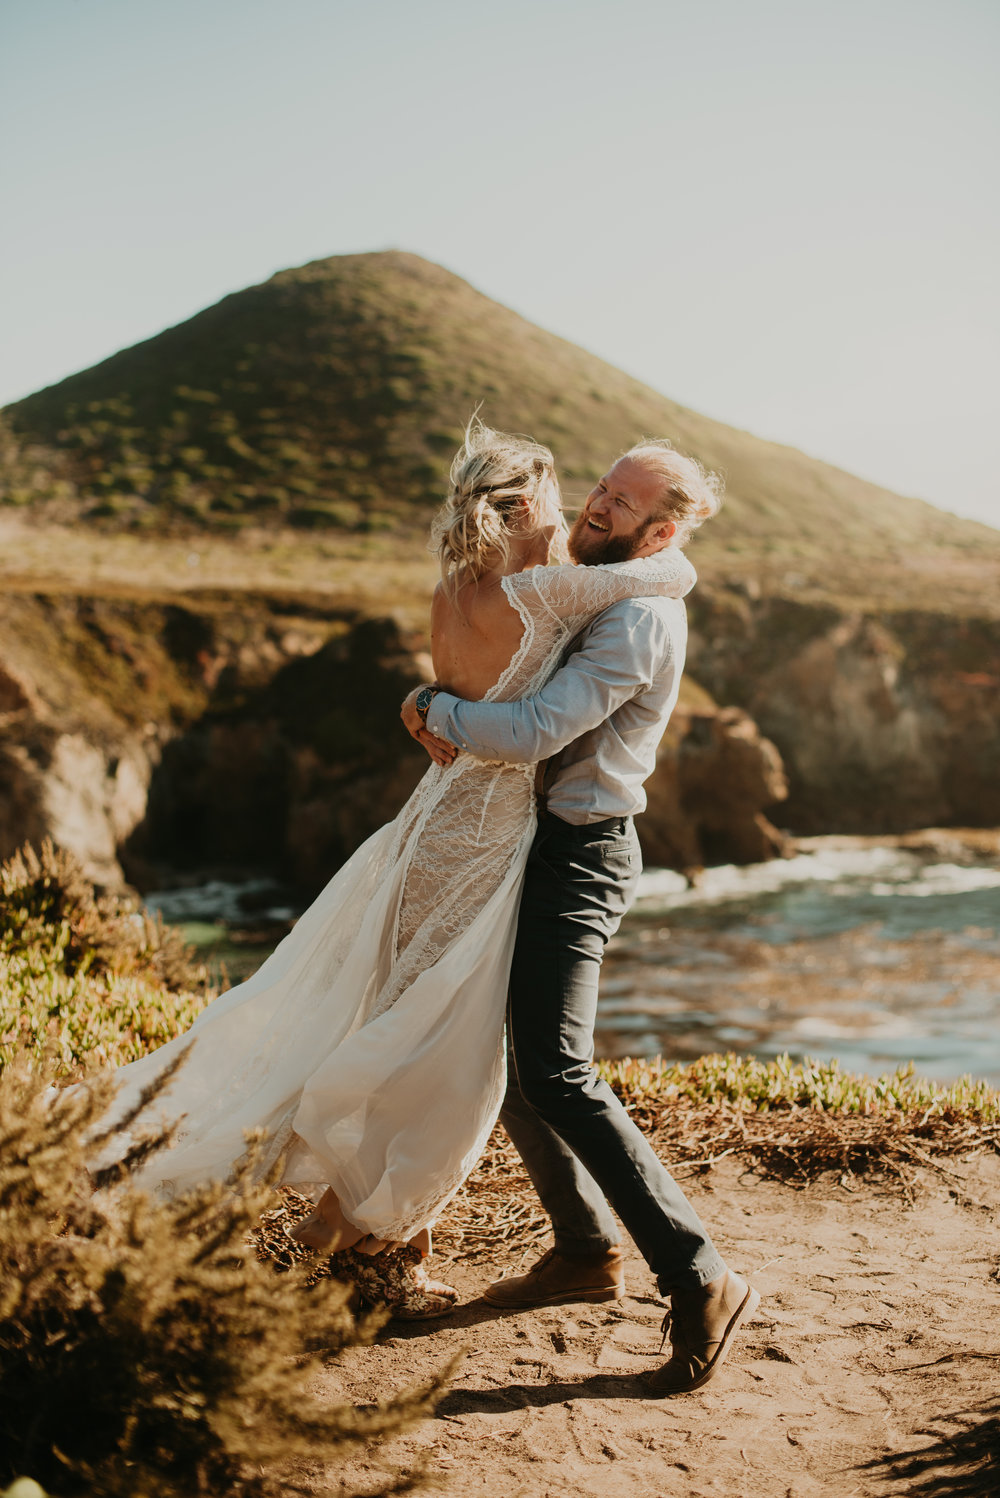 Joanna + Brian Intimate Wedding in Big Sur, CA - Kamra Fuller Photography-844.jpg